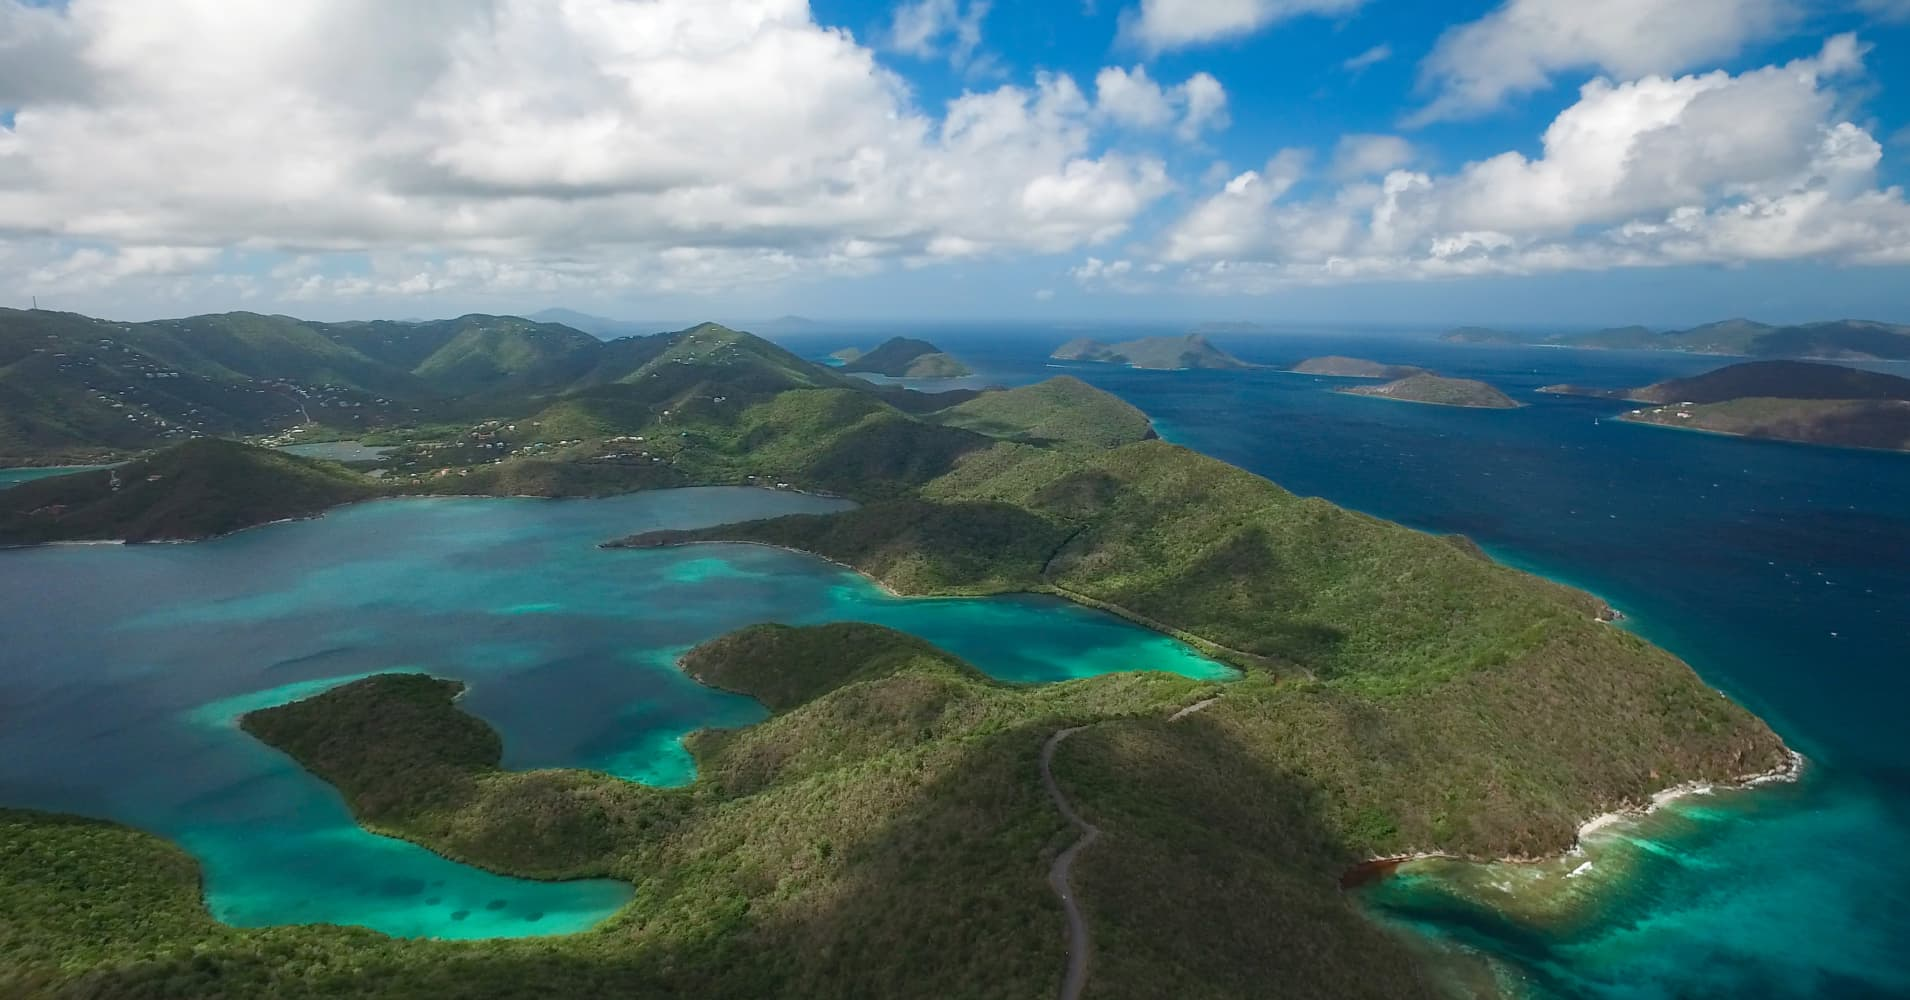 Aerial view of Hurricane Hole and Coral Bay, taken from East End of St. John, U.S. Virgin Islands